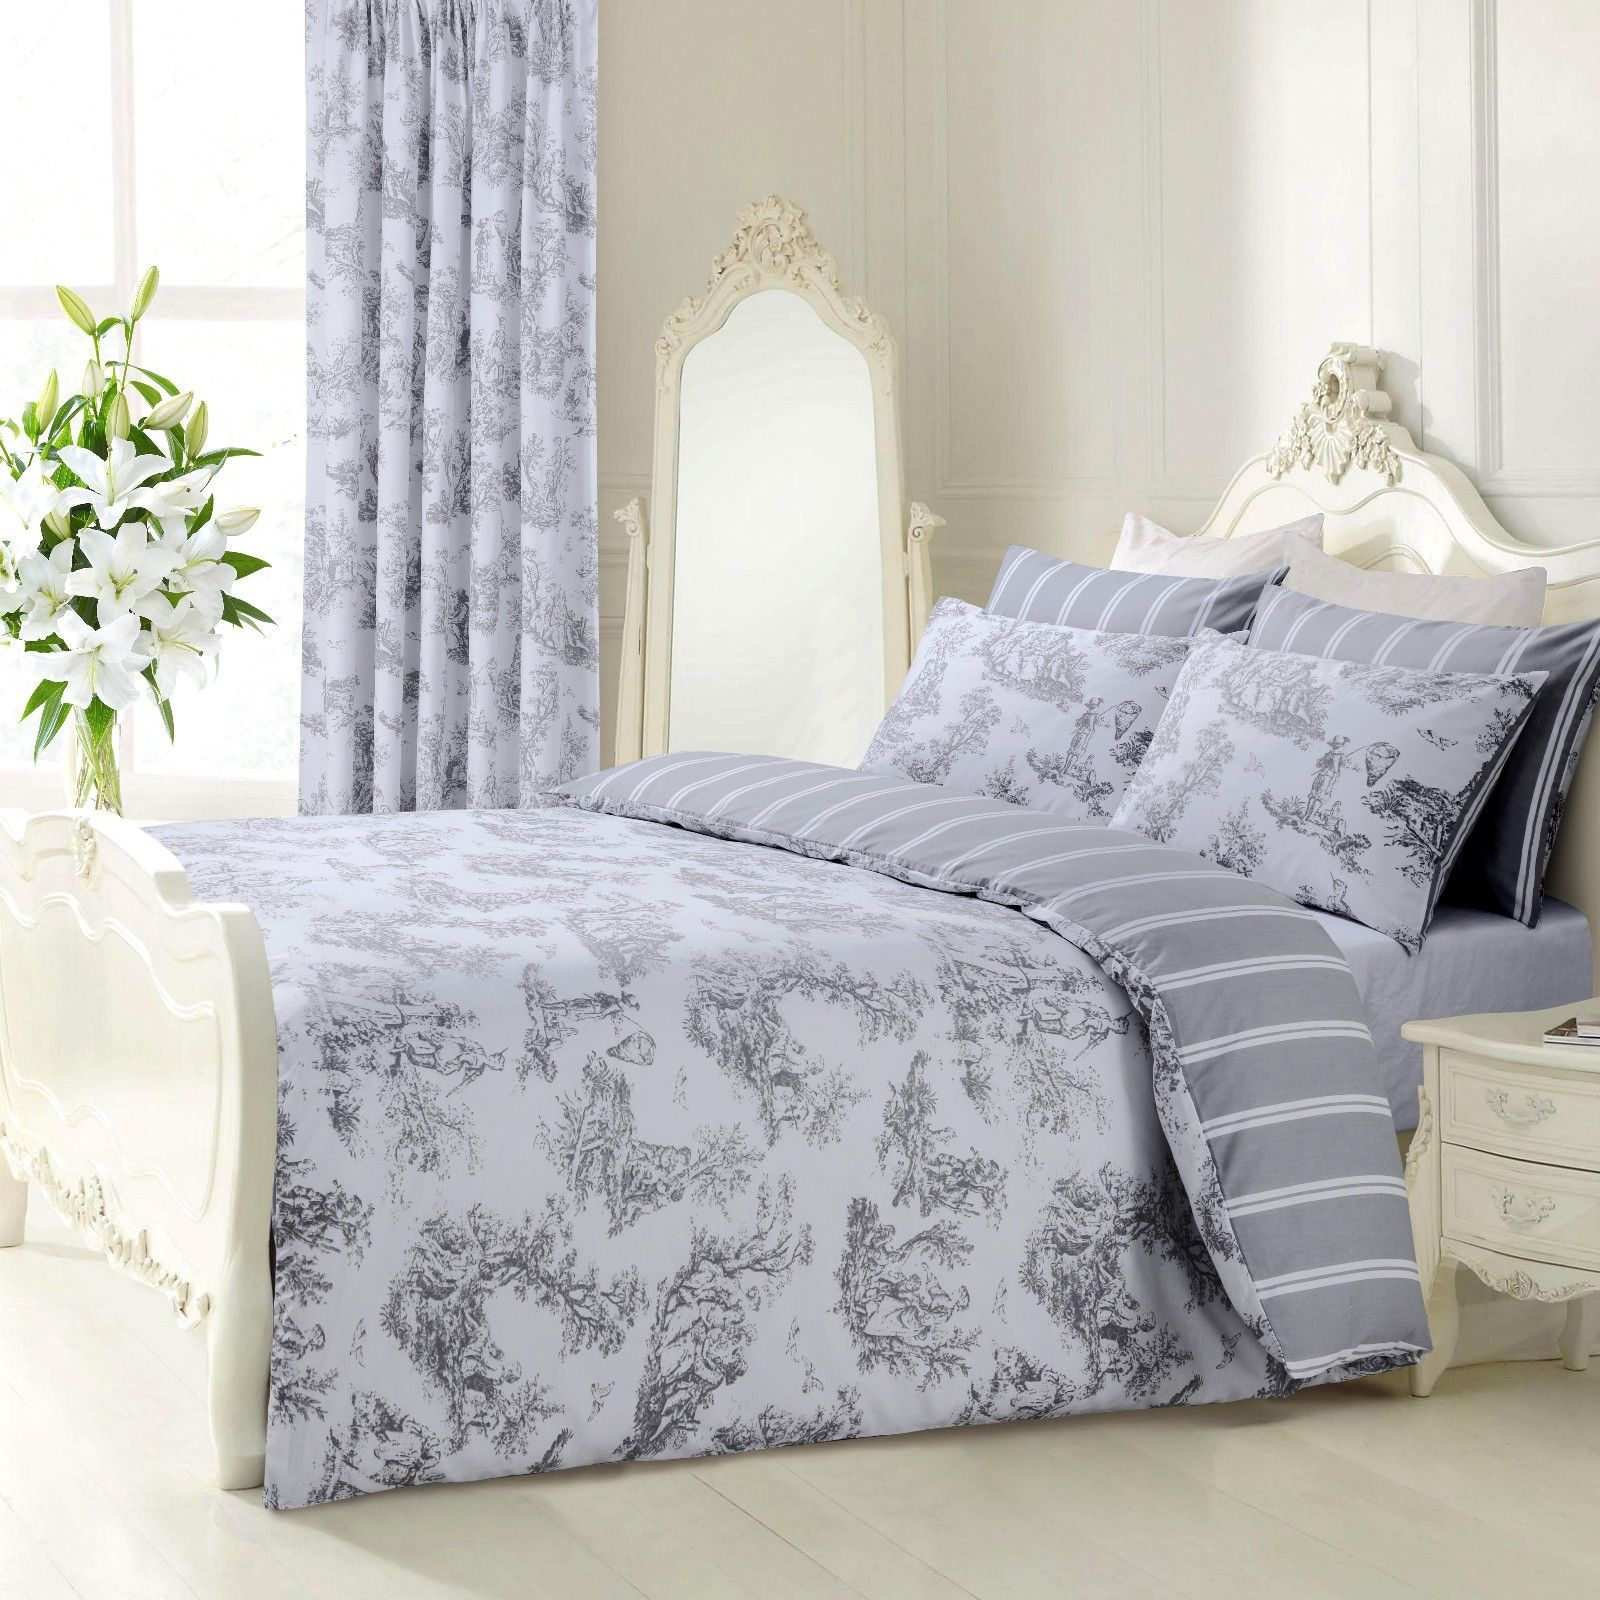 Grey White Stylish Toille French Floral Design Reversible